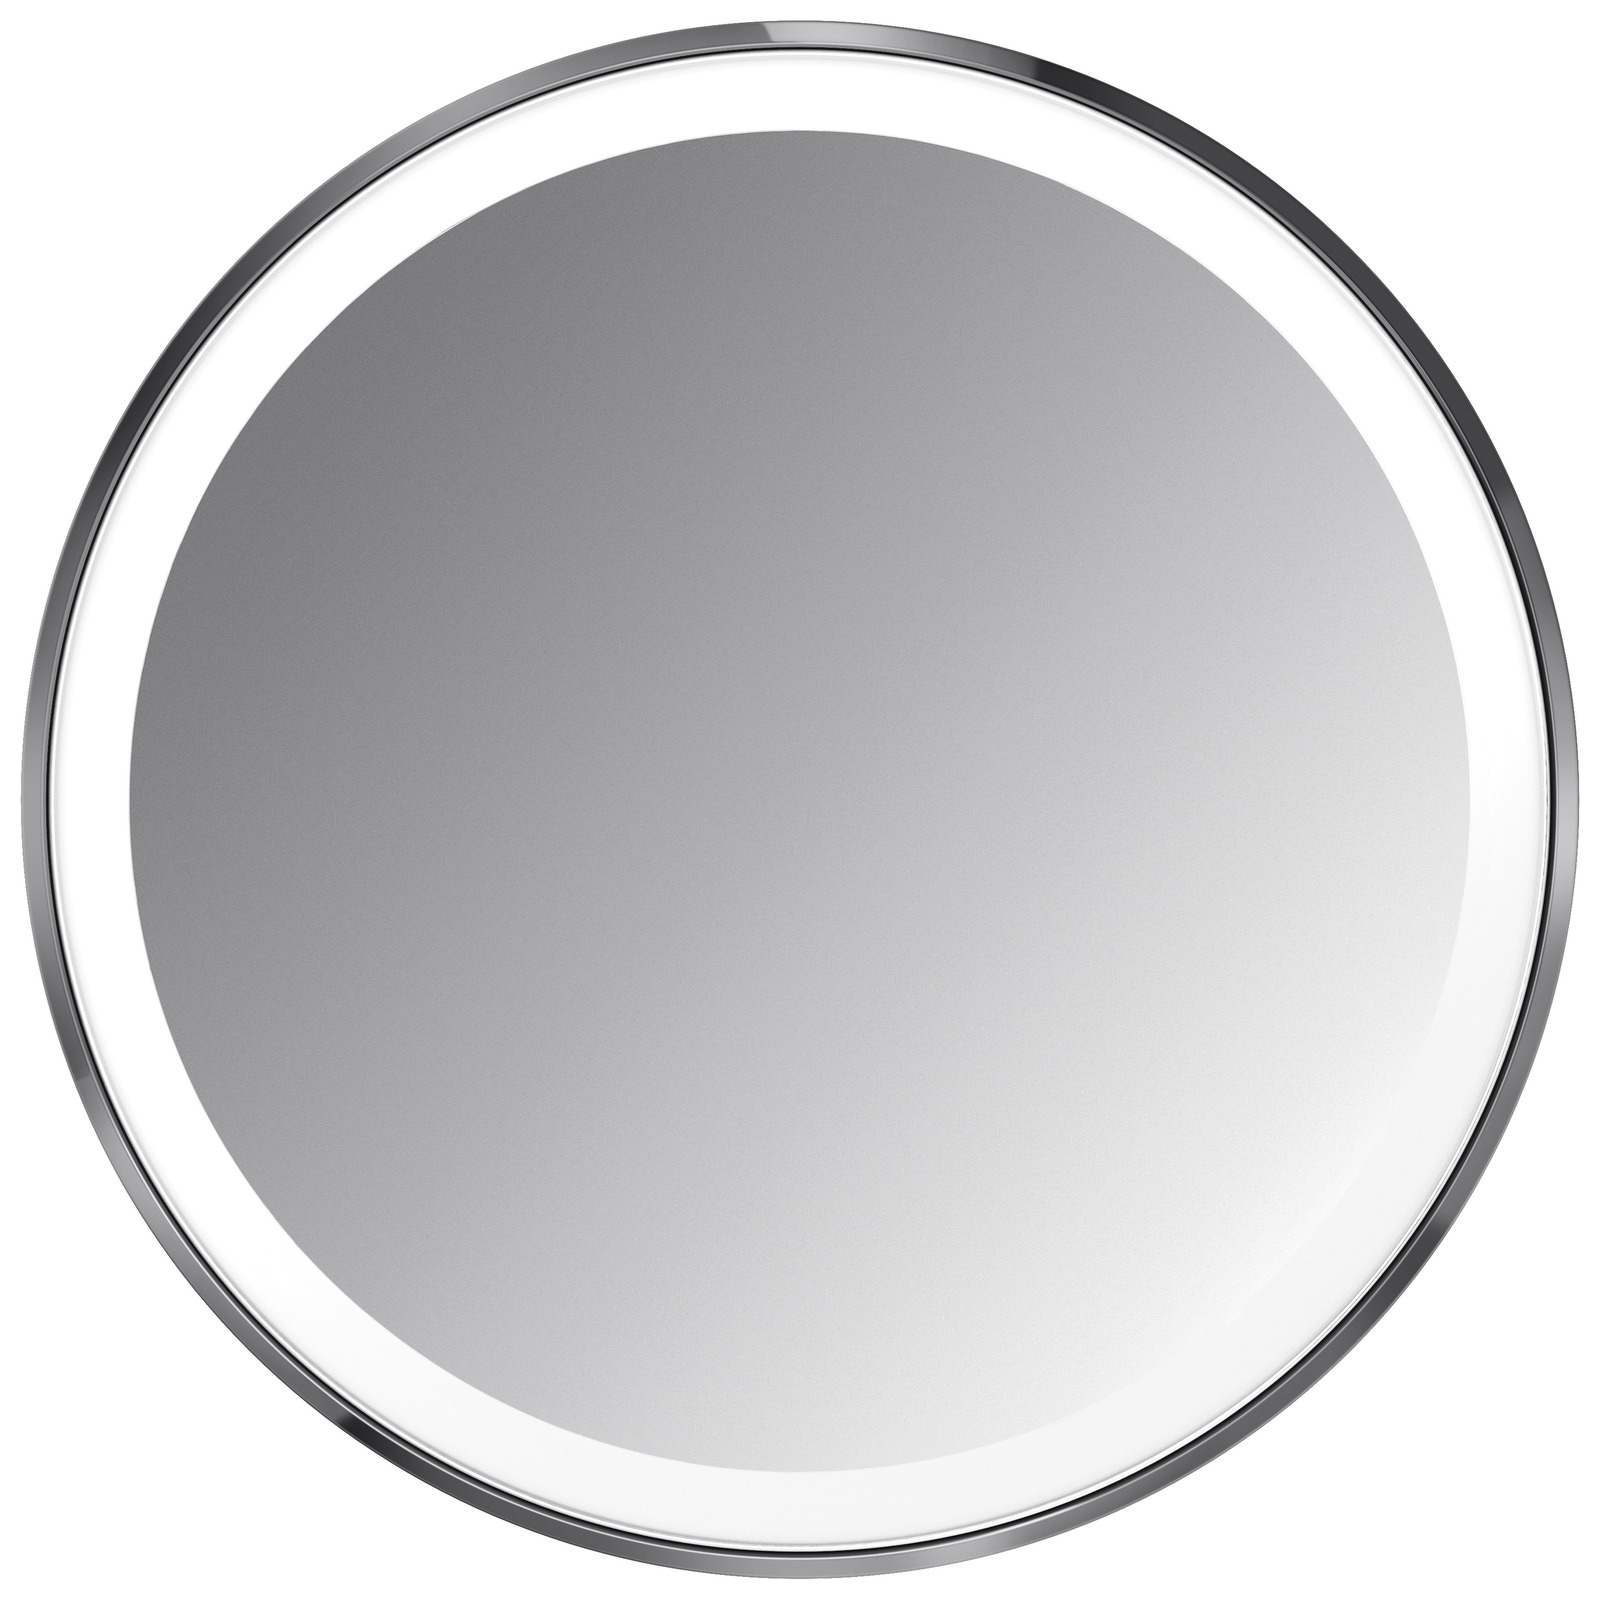 simplehuman Sensor Mirrors 3 x Magnification 10cm Sensor Mirror Compact: Round, Black Stainless Steel, Rechargeable with Pouch